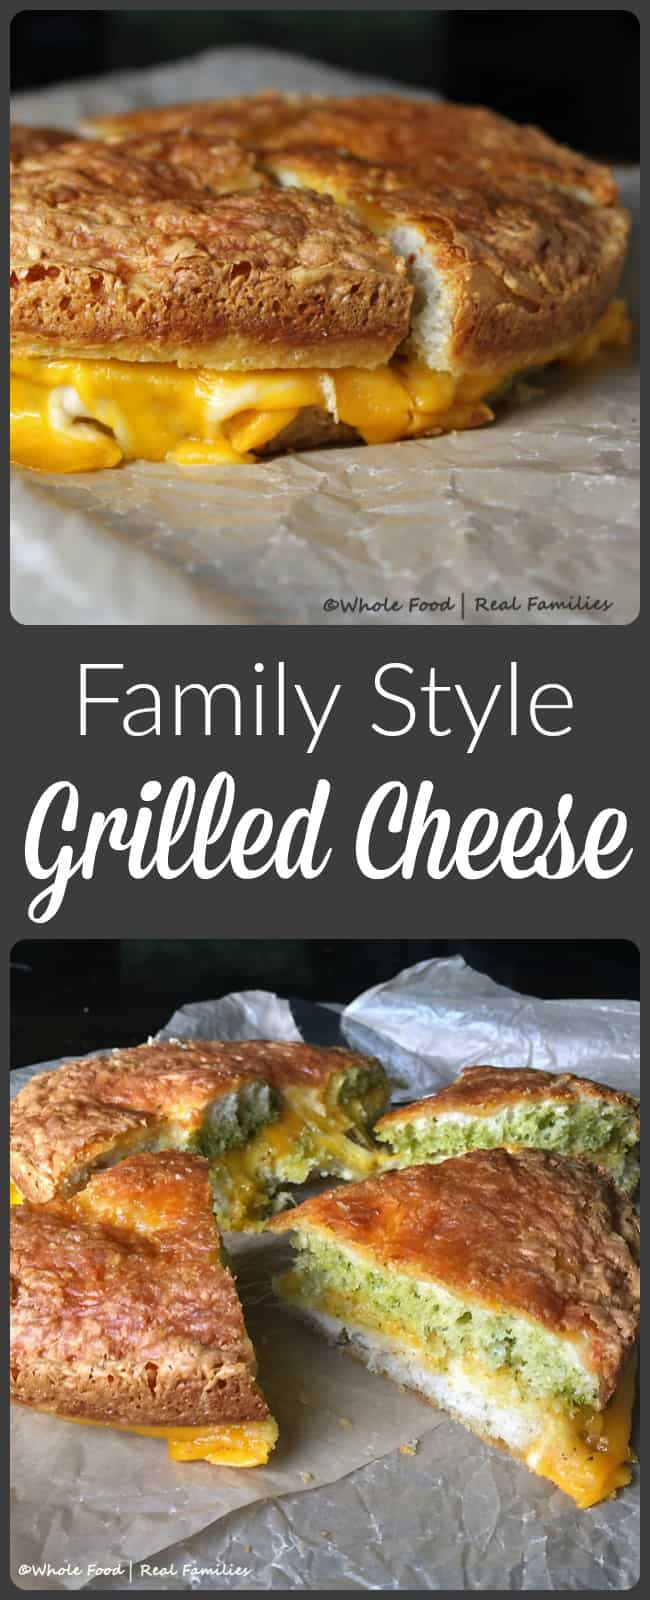 Family Style Grilled Cheese